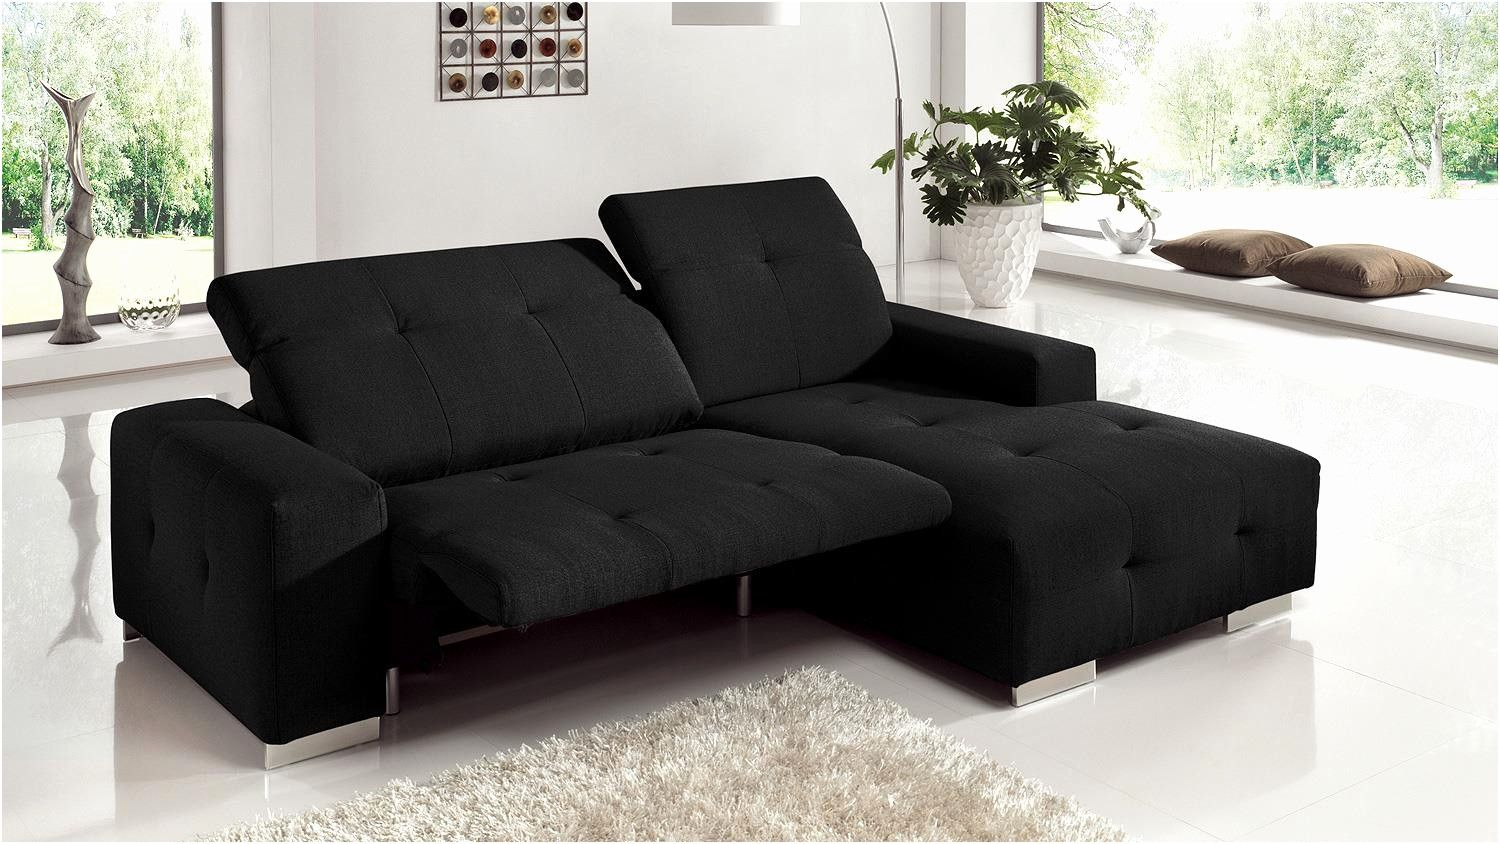 Relax Couch Elektrisch Modern Couch Couch Home Decor